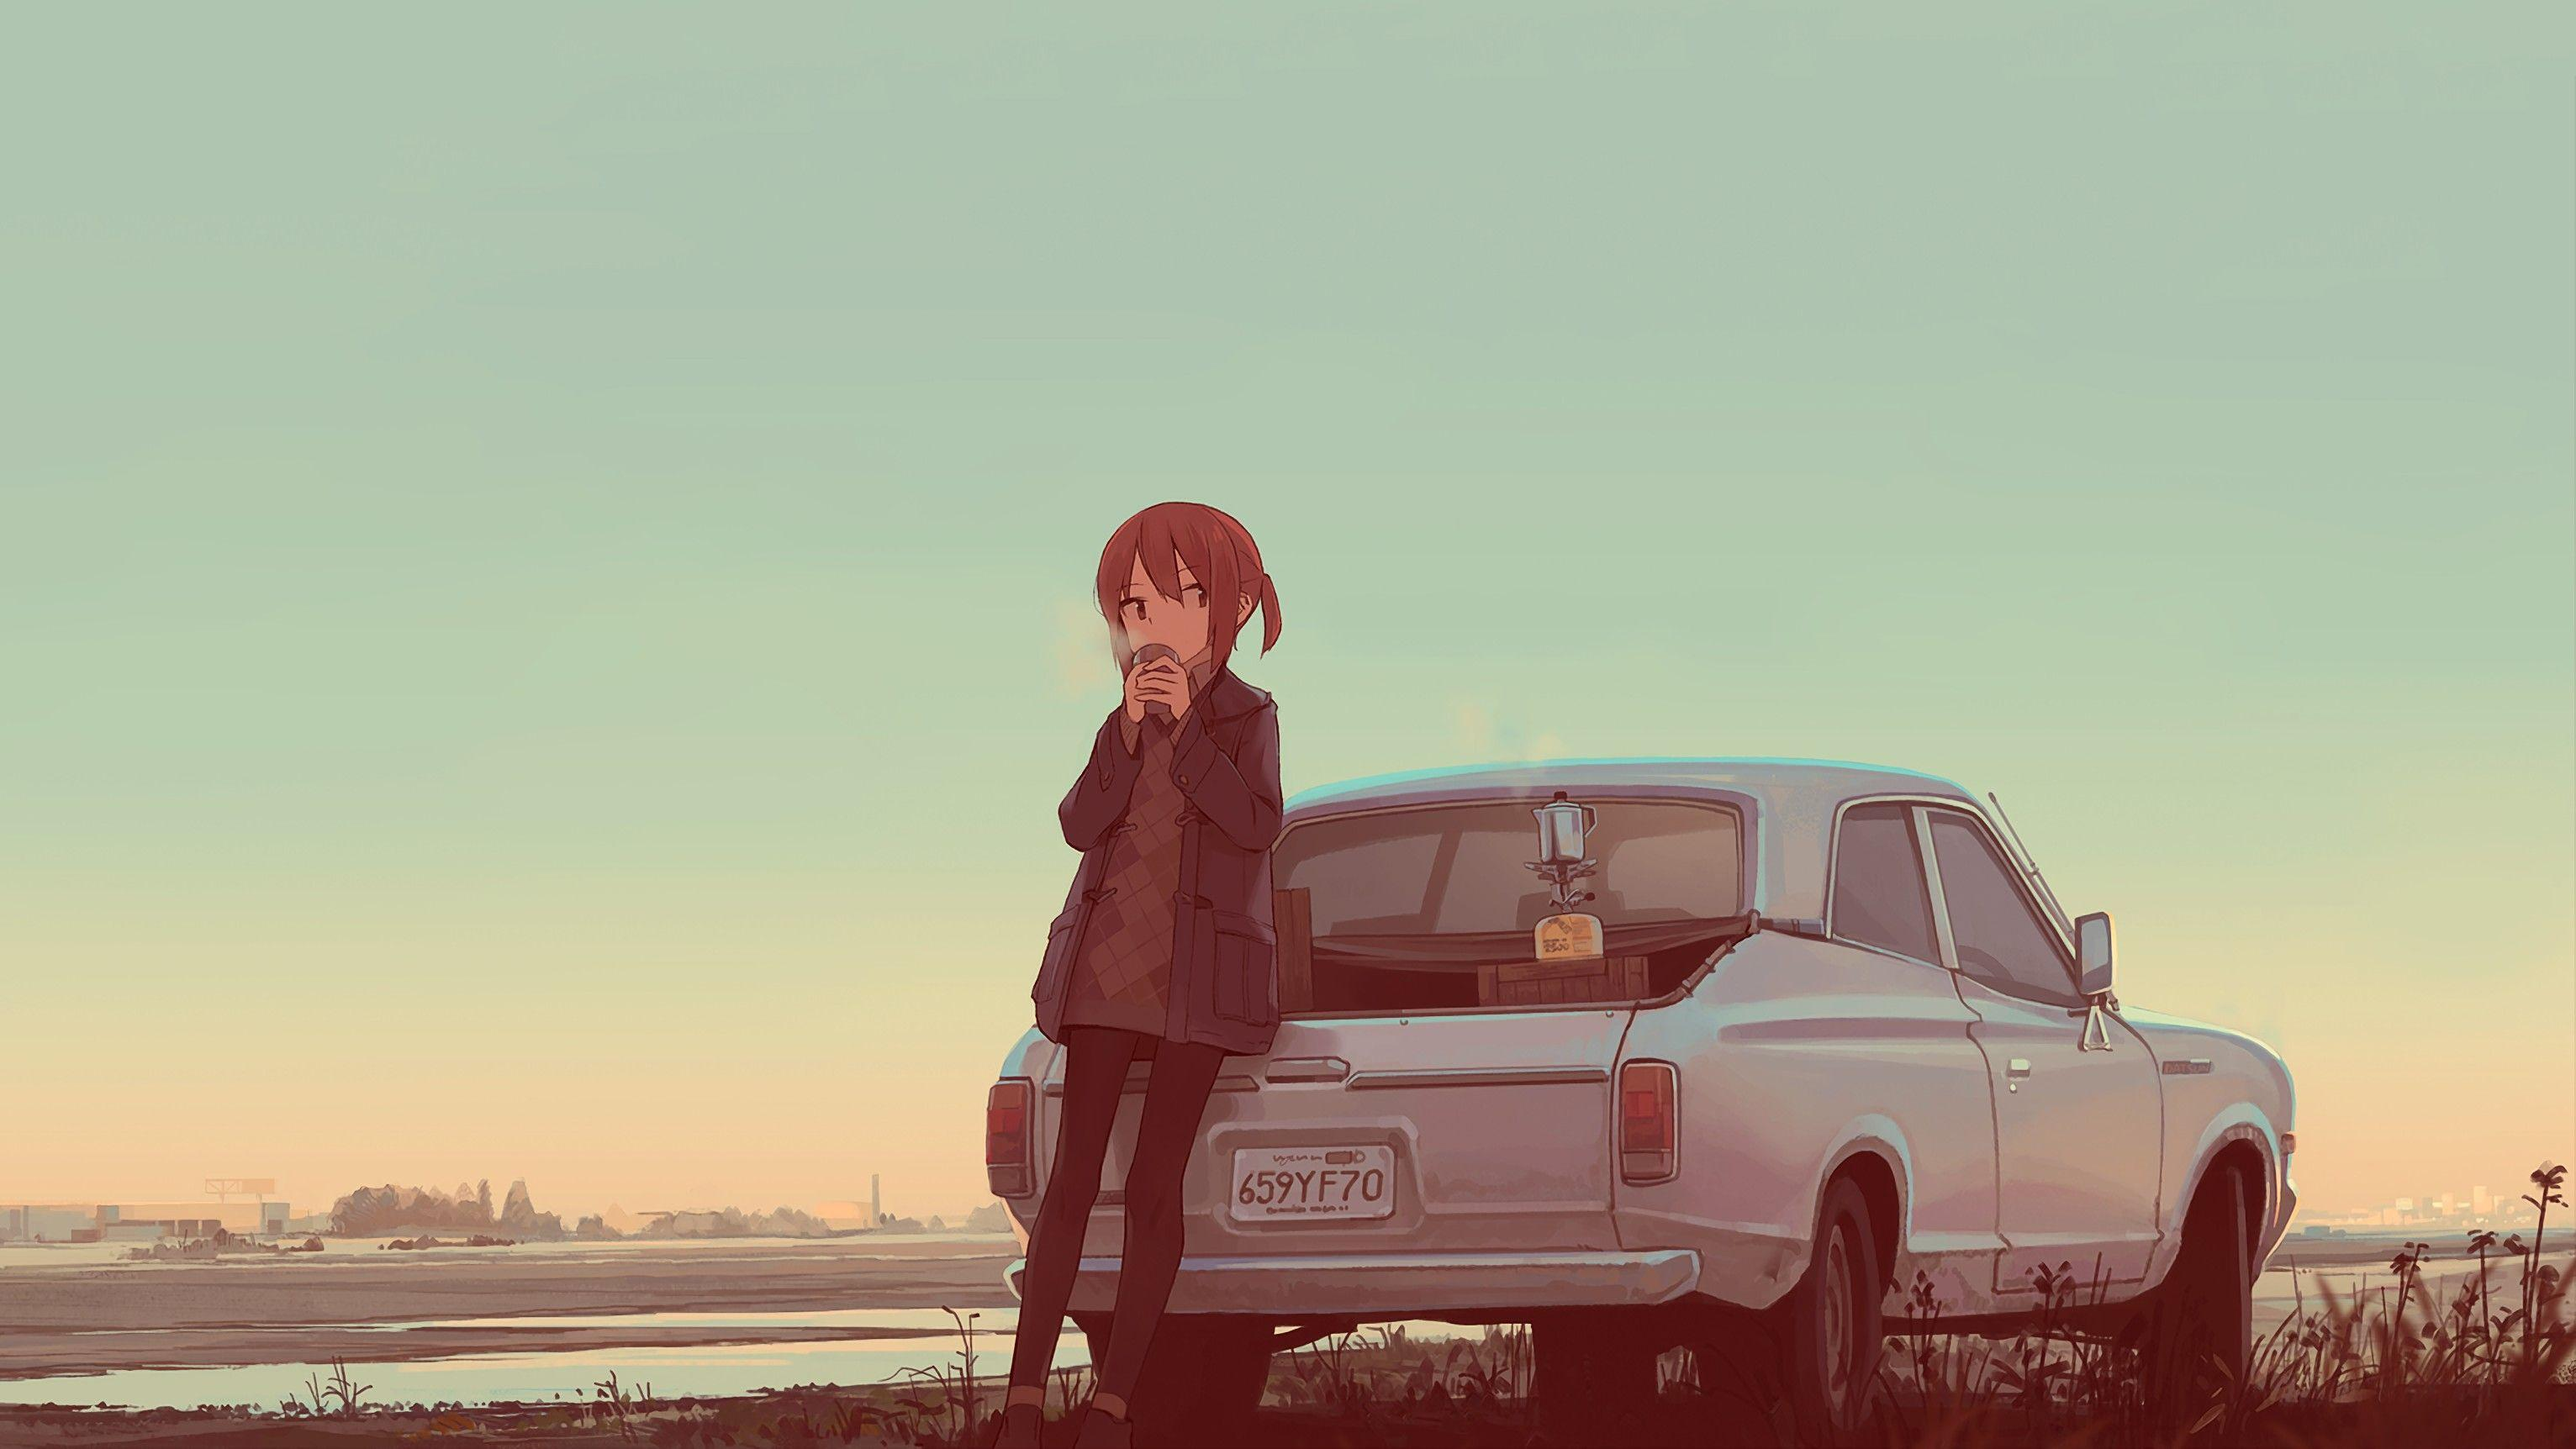 Anime Cars Aesthetic Wallpapers - Wallpaper Cave